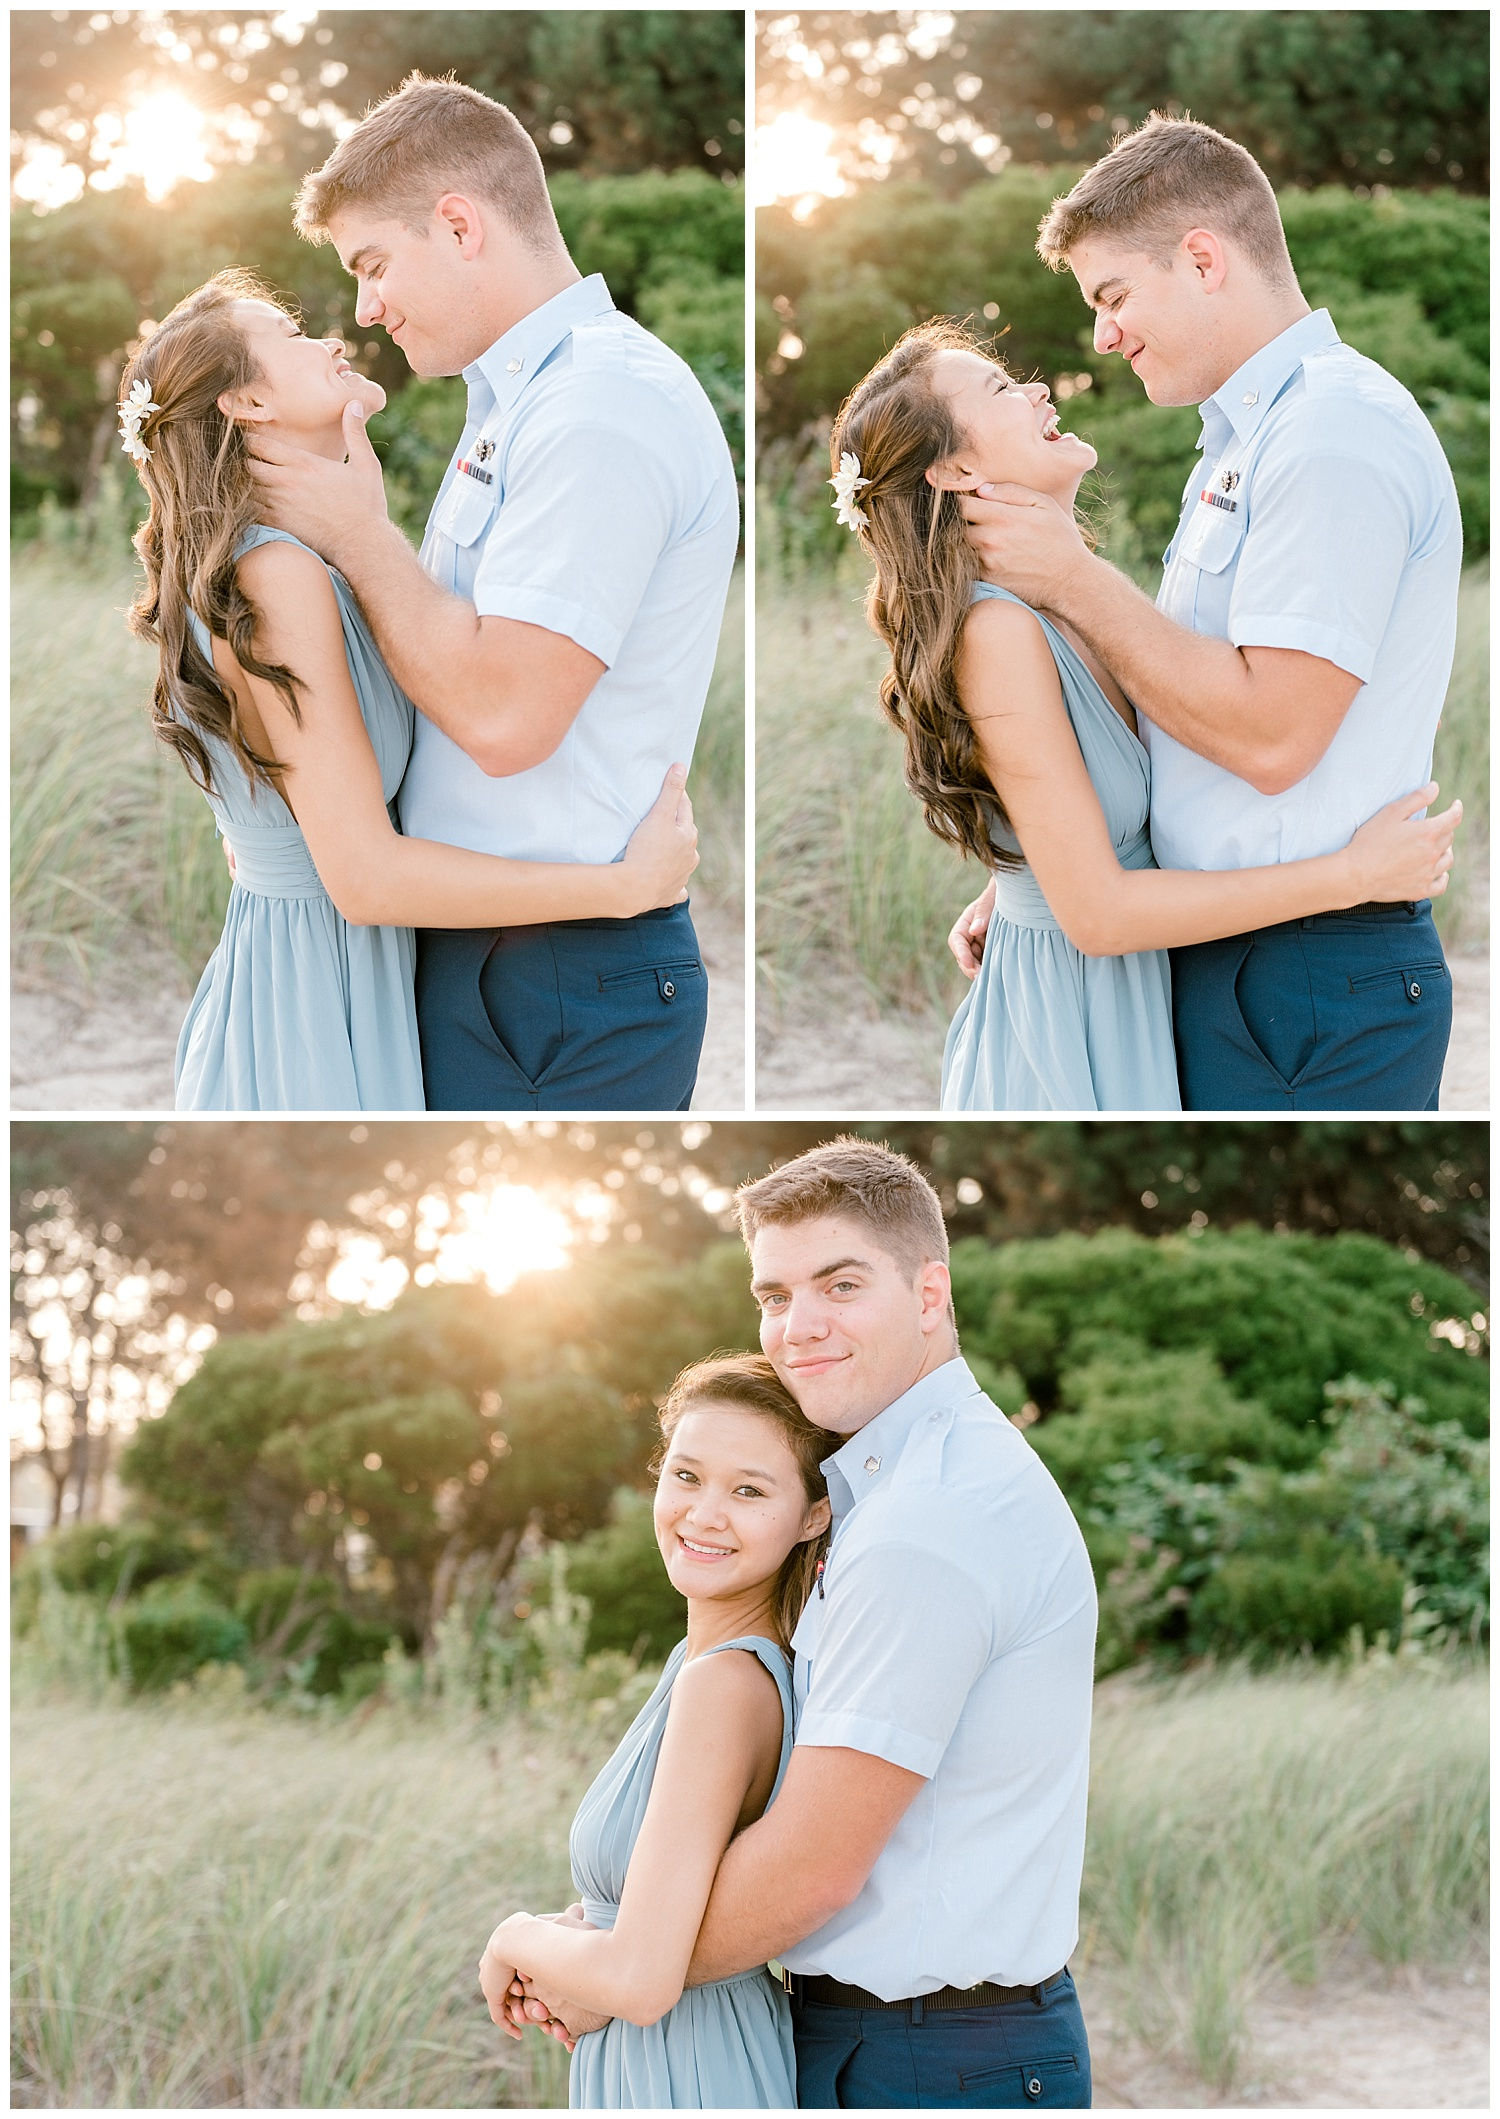 august18-rhode-island-engagement-photography-field-couples-portraits-beach-8.jpg